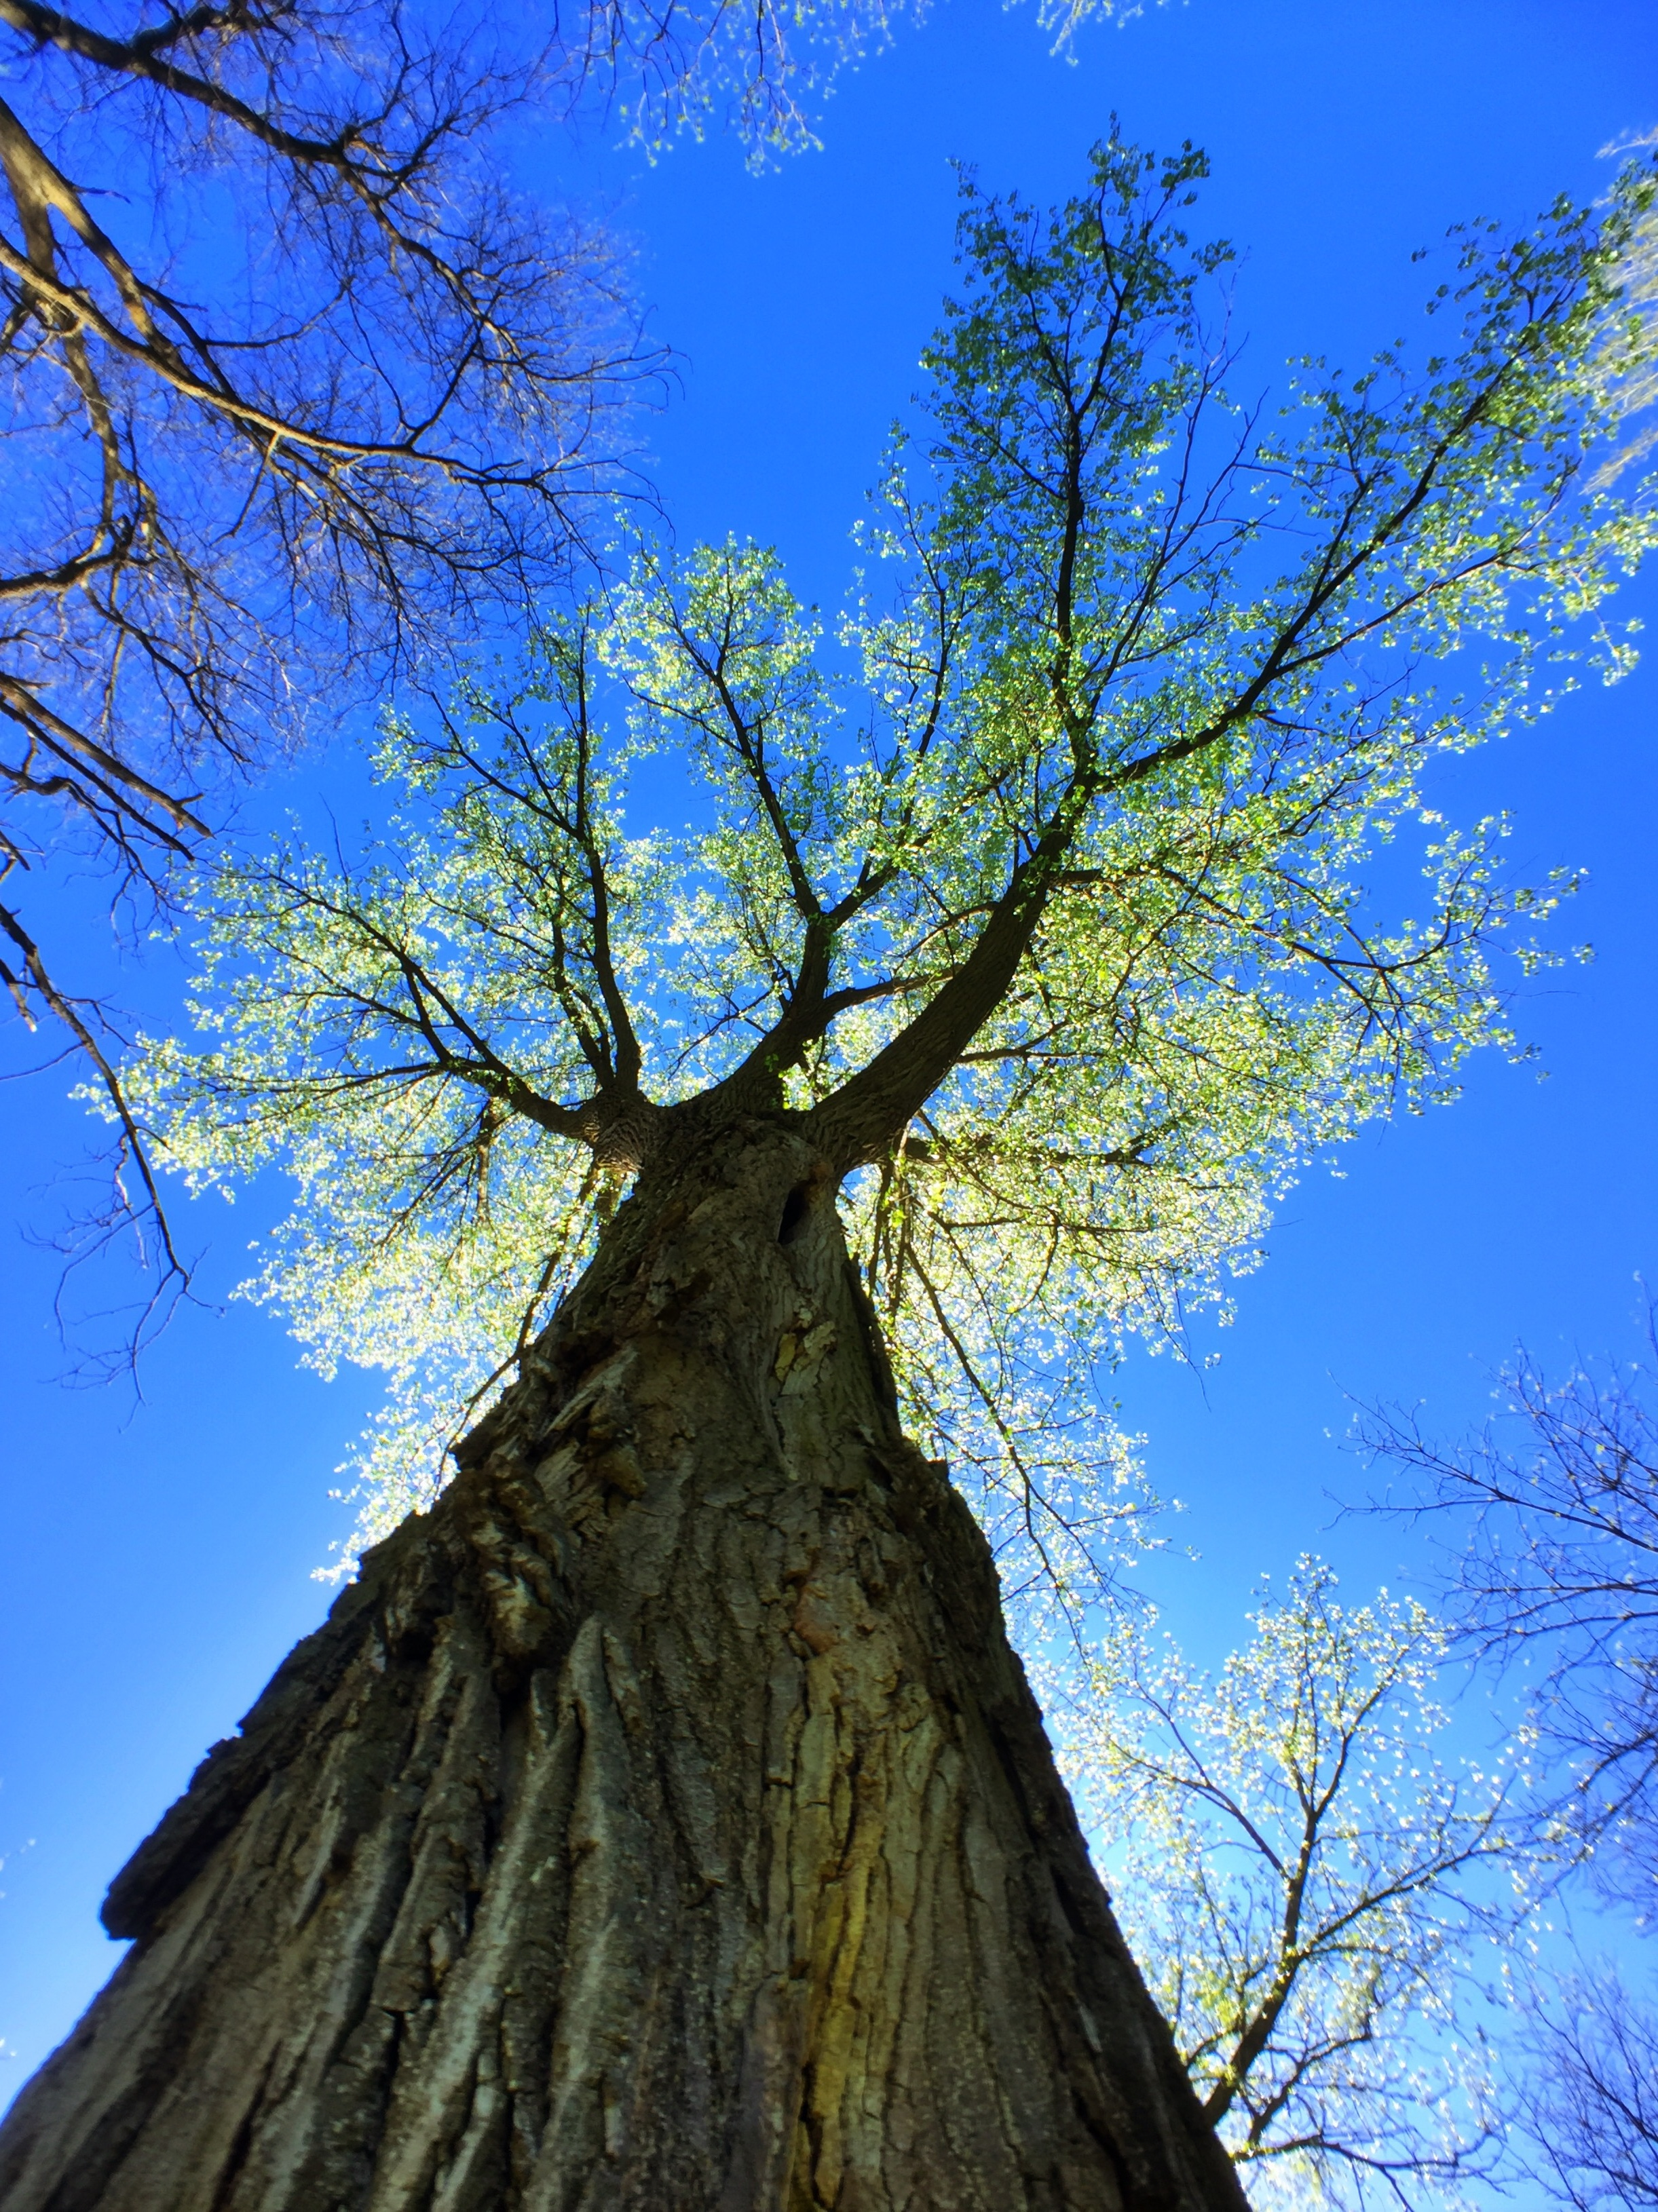 The cottonwood shimmer